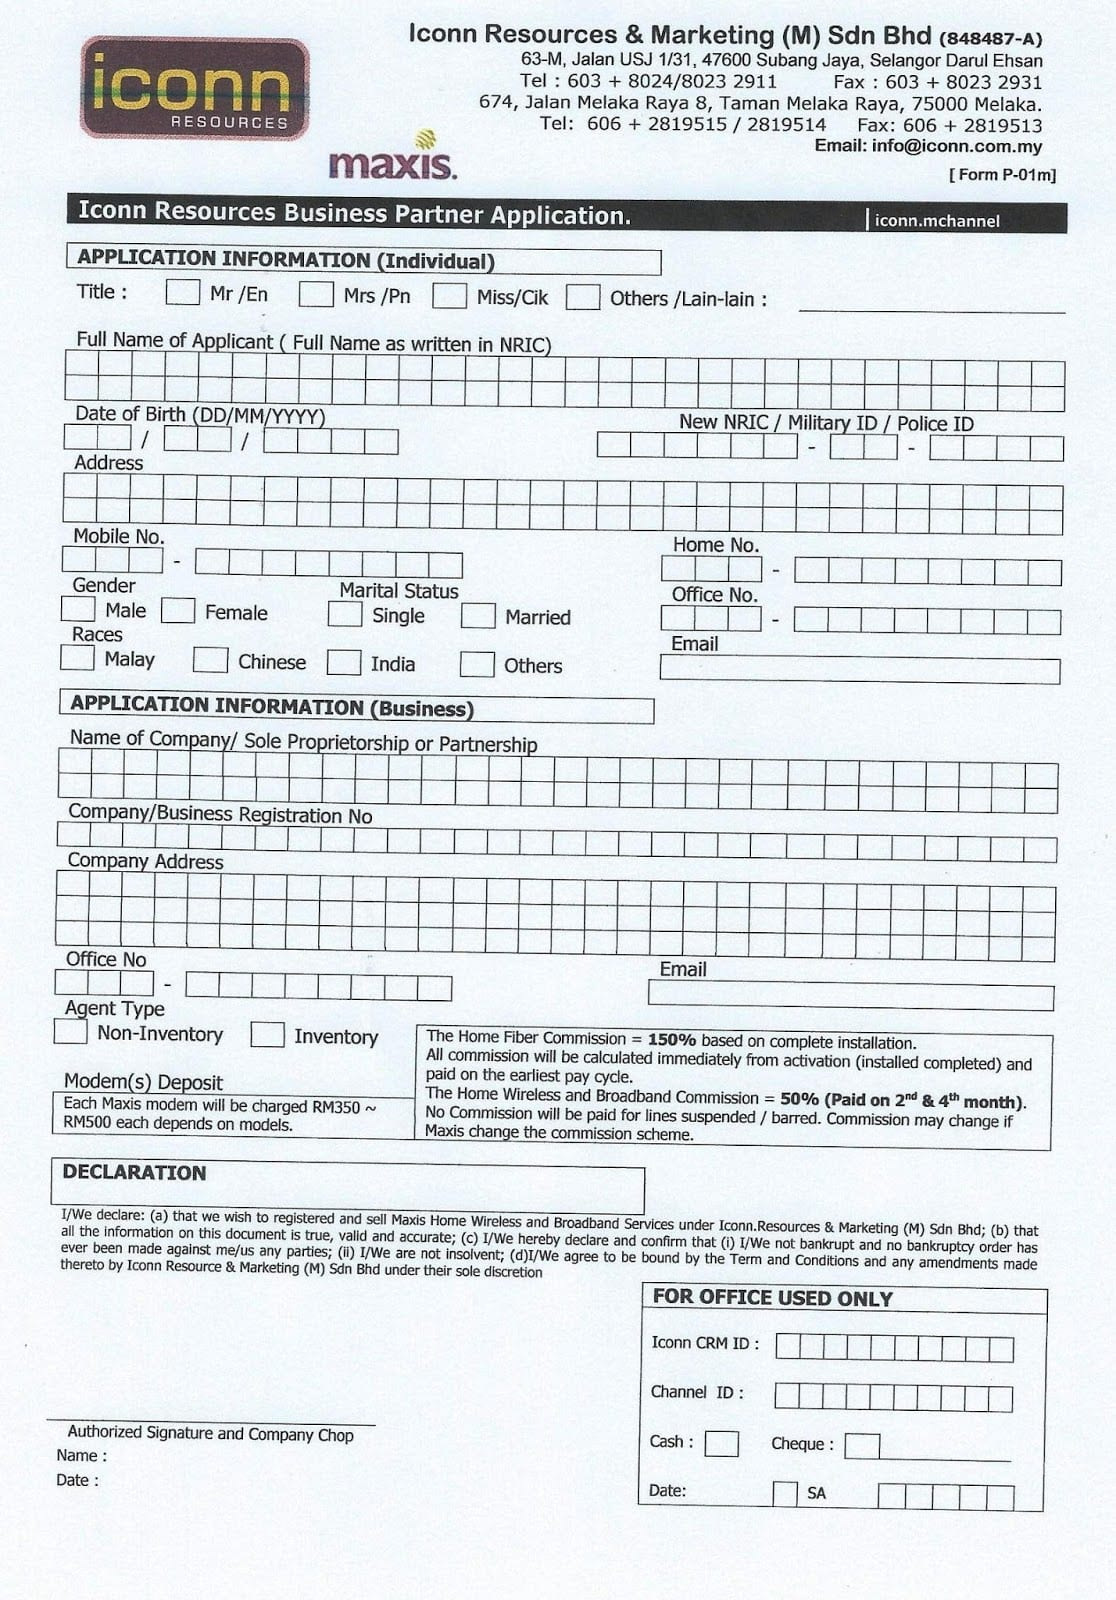 Illinois Business Registration Application Instructions Business Registration Application Form Spreadsheet Templates for Busines Spreadsheet Templates for Busines NJ Business Registration Application Instructions